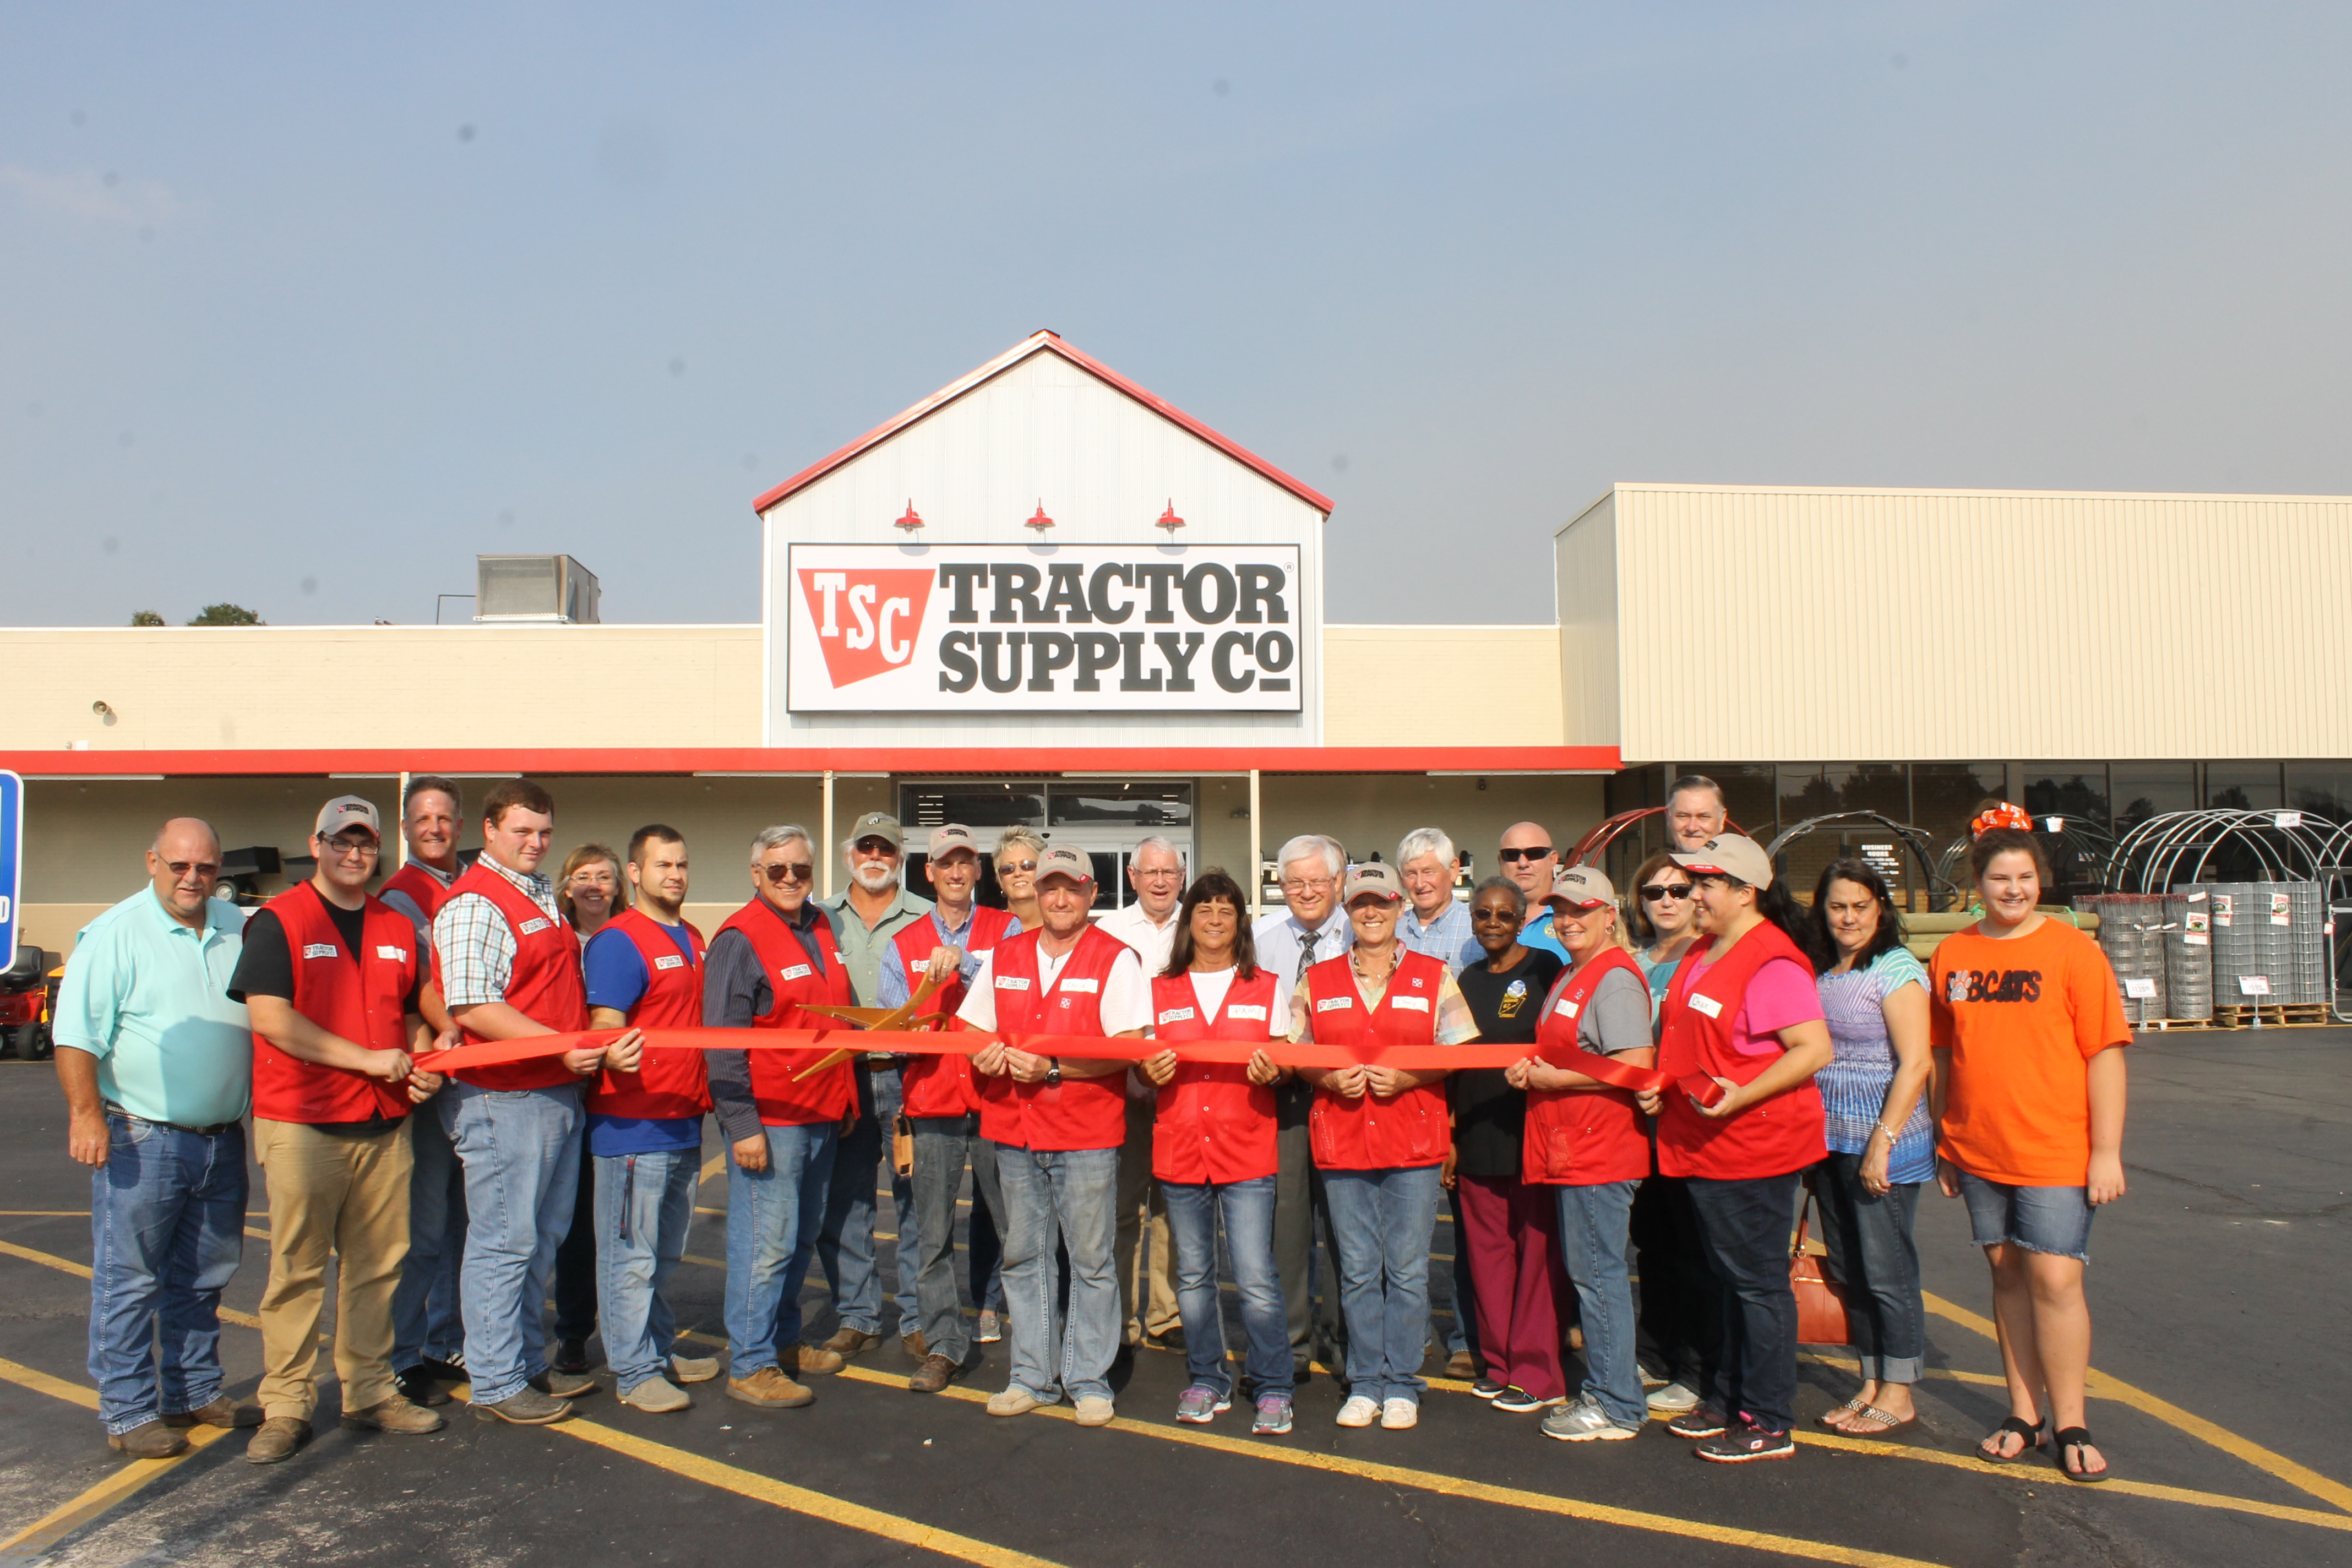 Tsc Tractor Supply : News archives lawrence county chamber of commerce